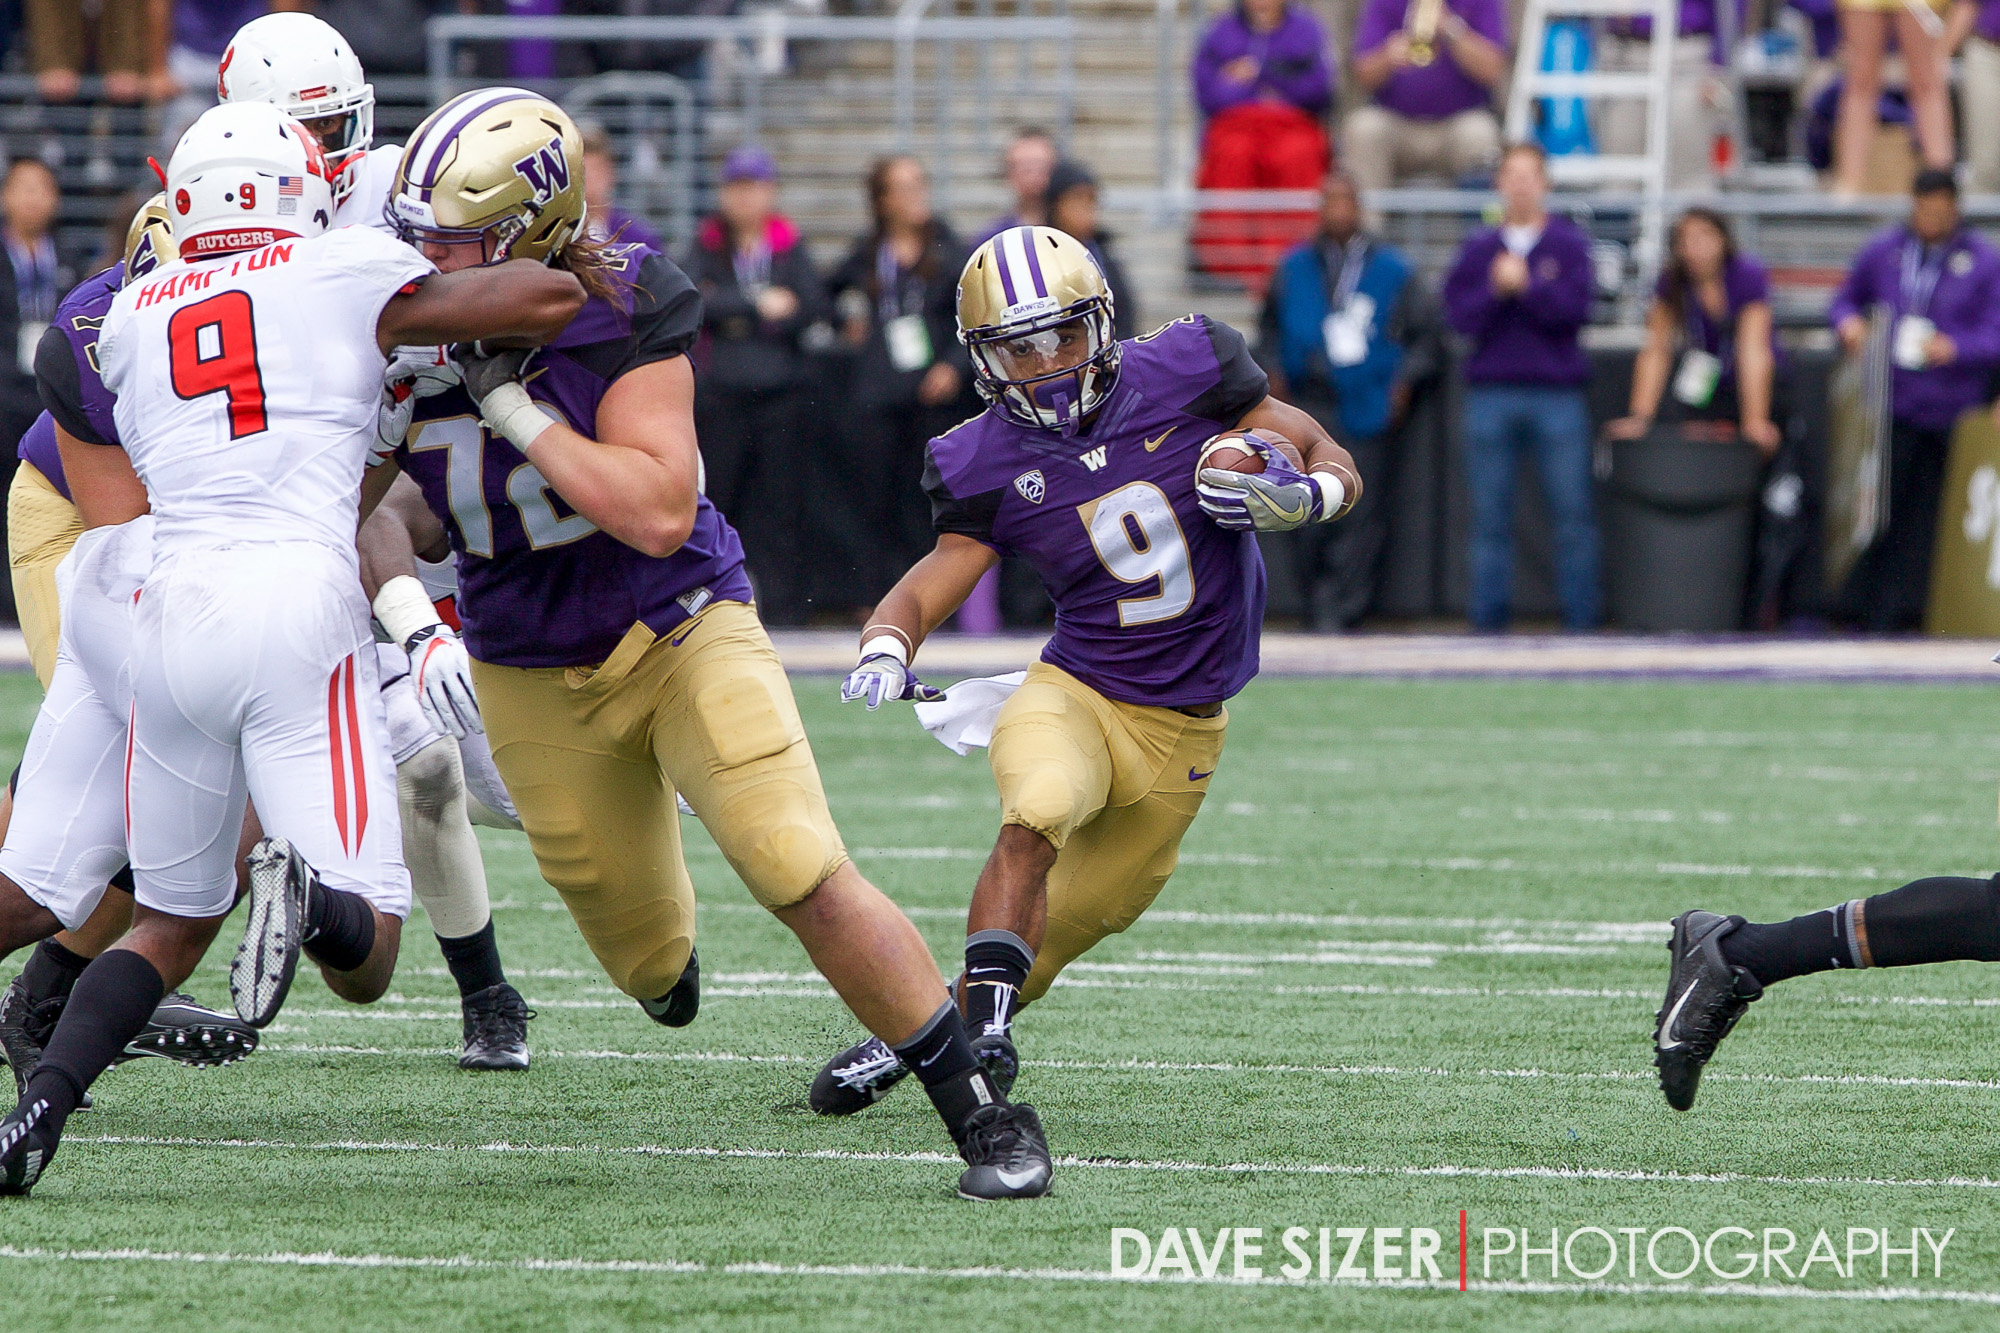 Myles Gaskin cuts around his blocker for yardage.